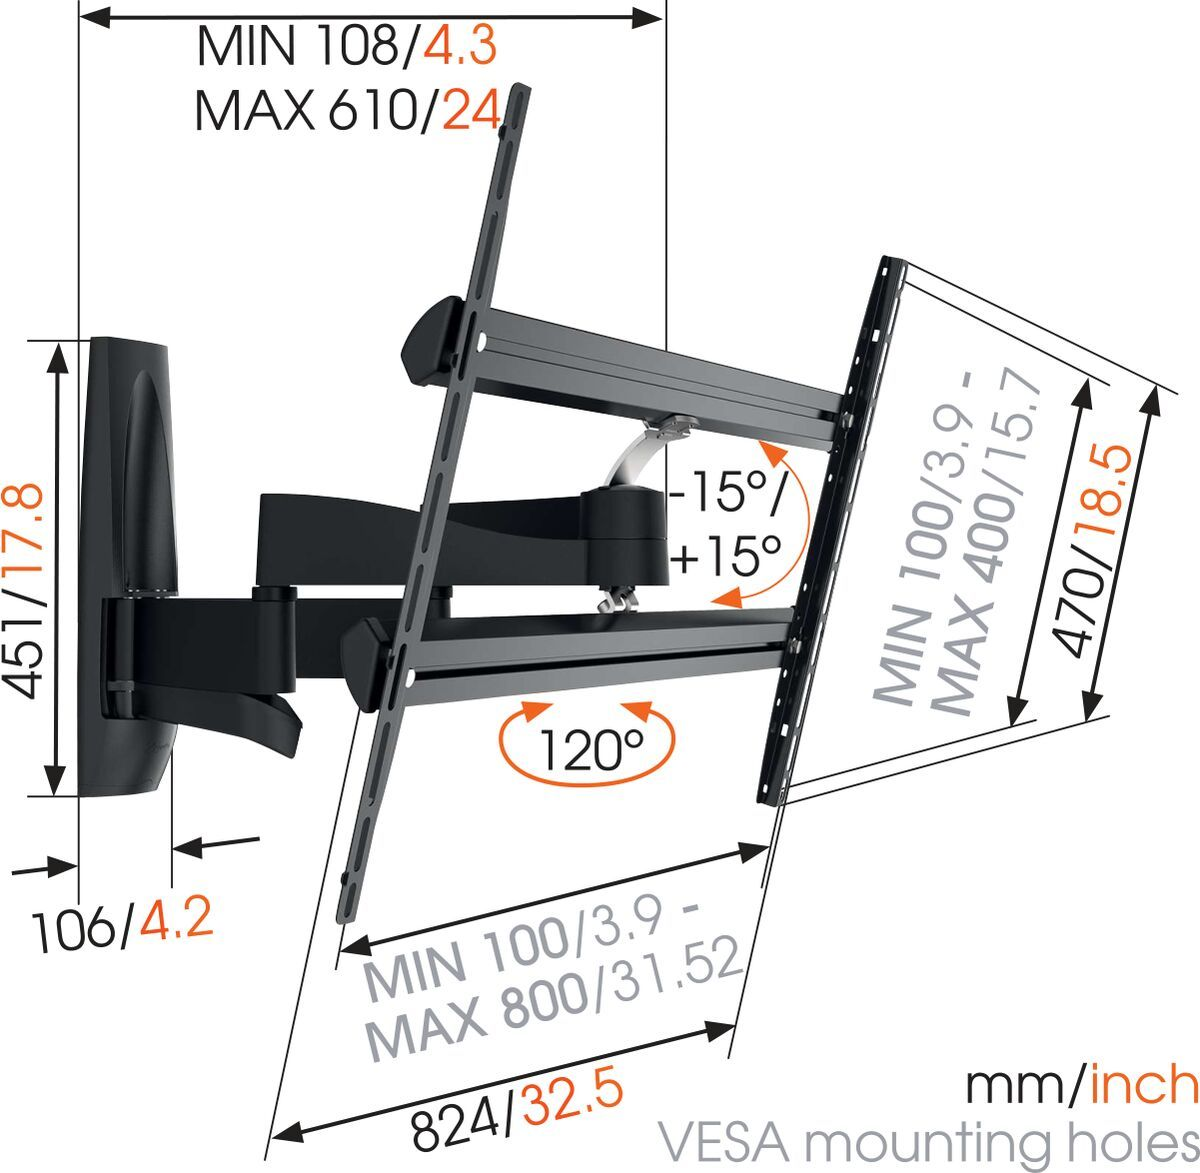 Vogel's WALL 2450 Full-Motion TV Wall Mount - Suitable for 55 up to 100 inch TVs - Motion (up to 120°) - Tilt up to 15° - Dimensions